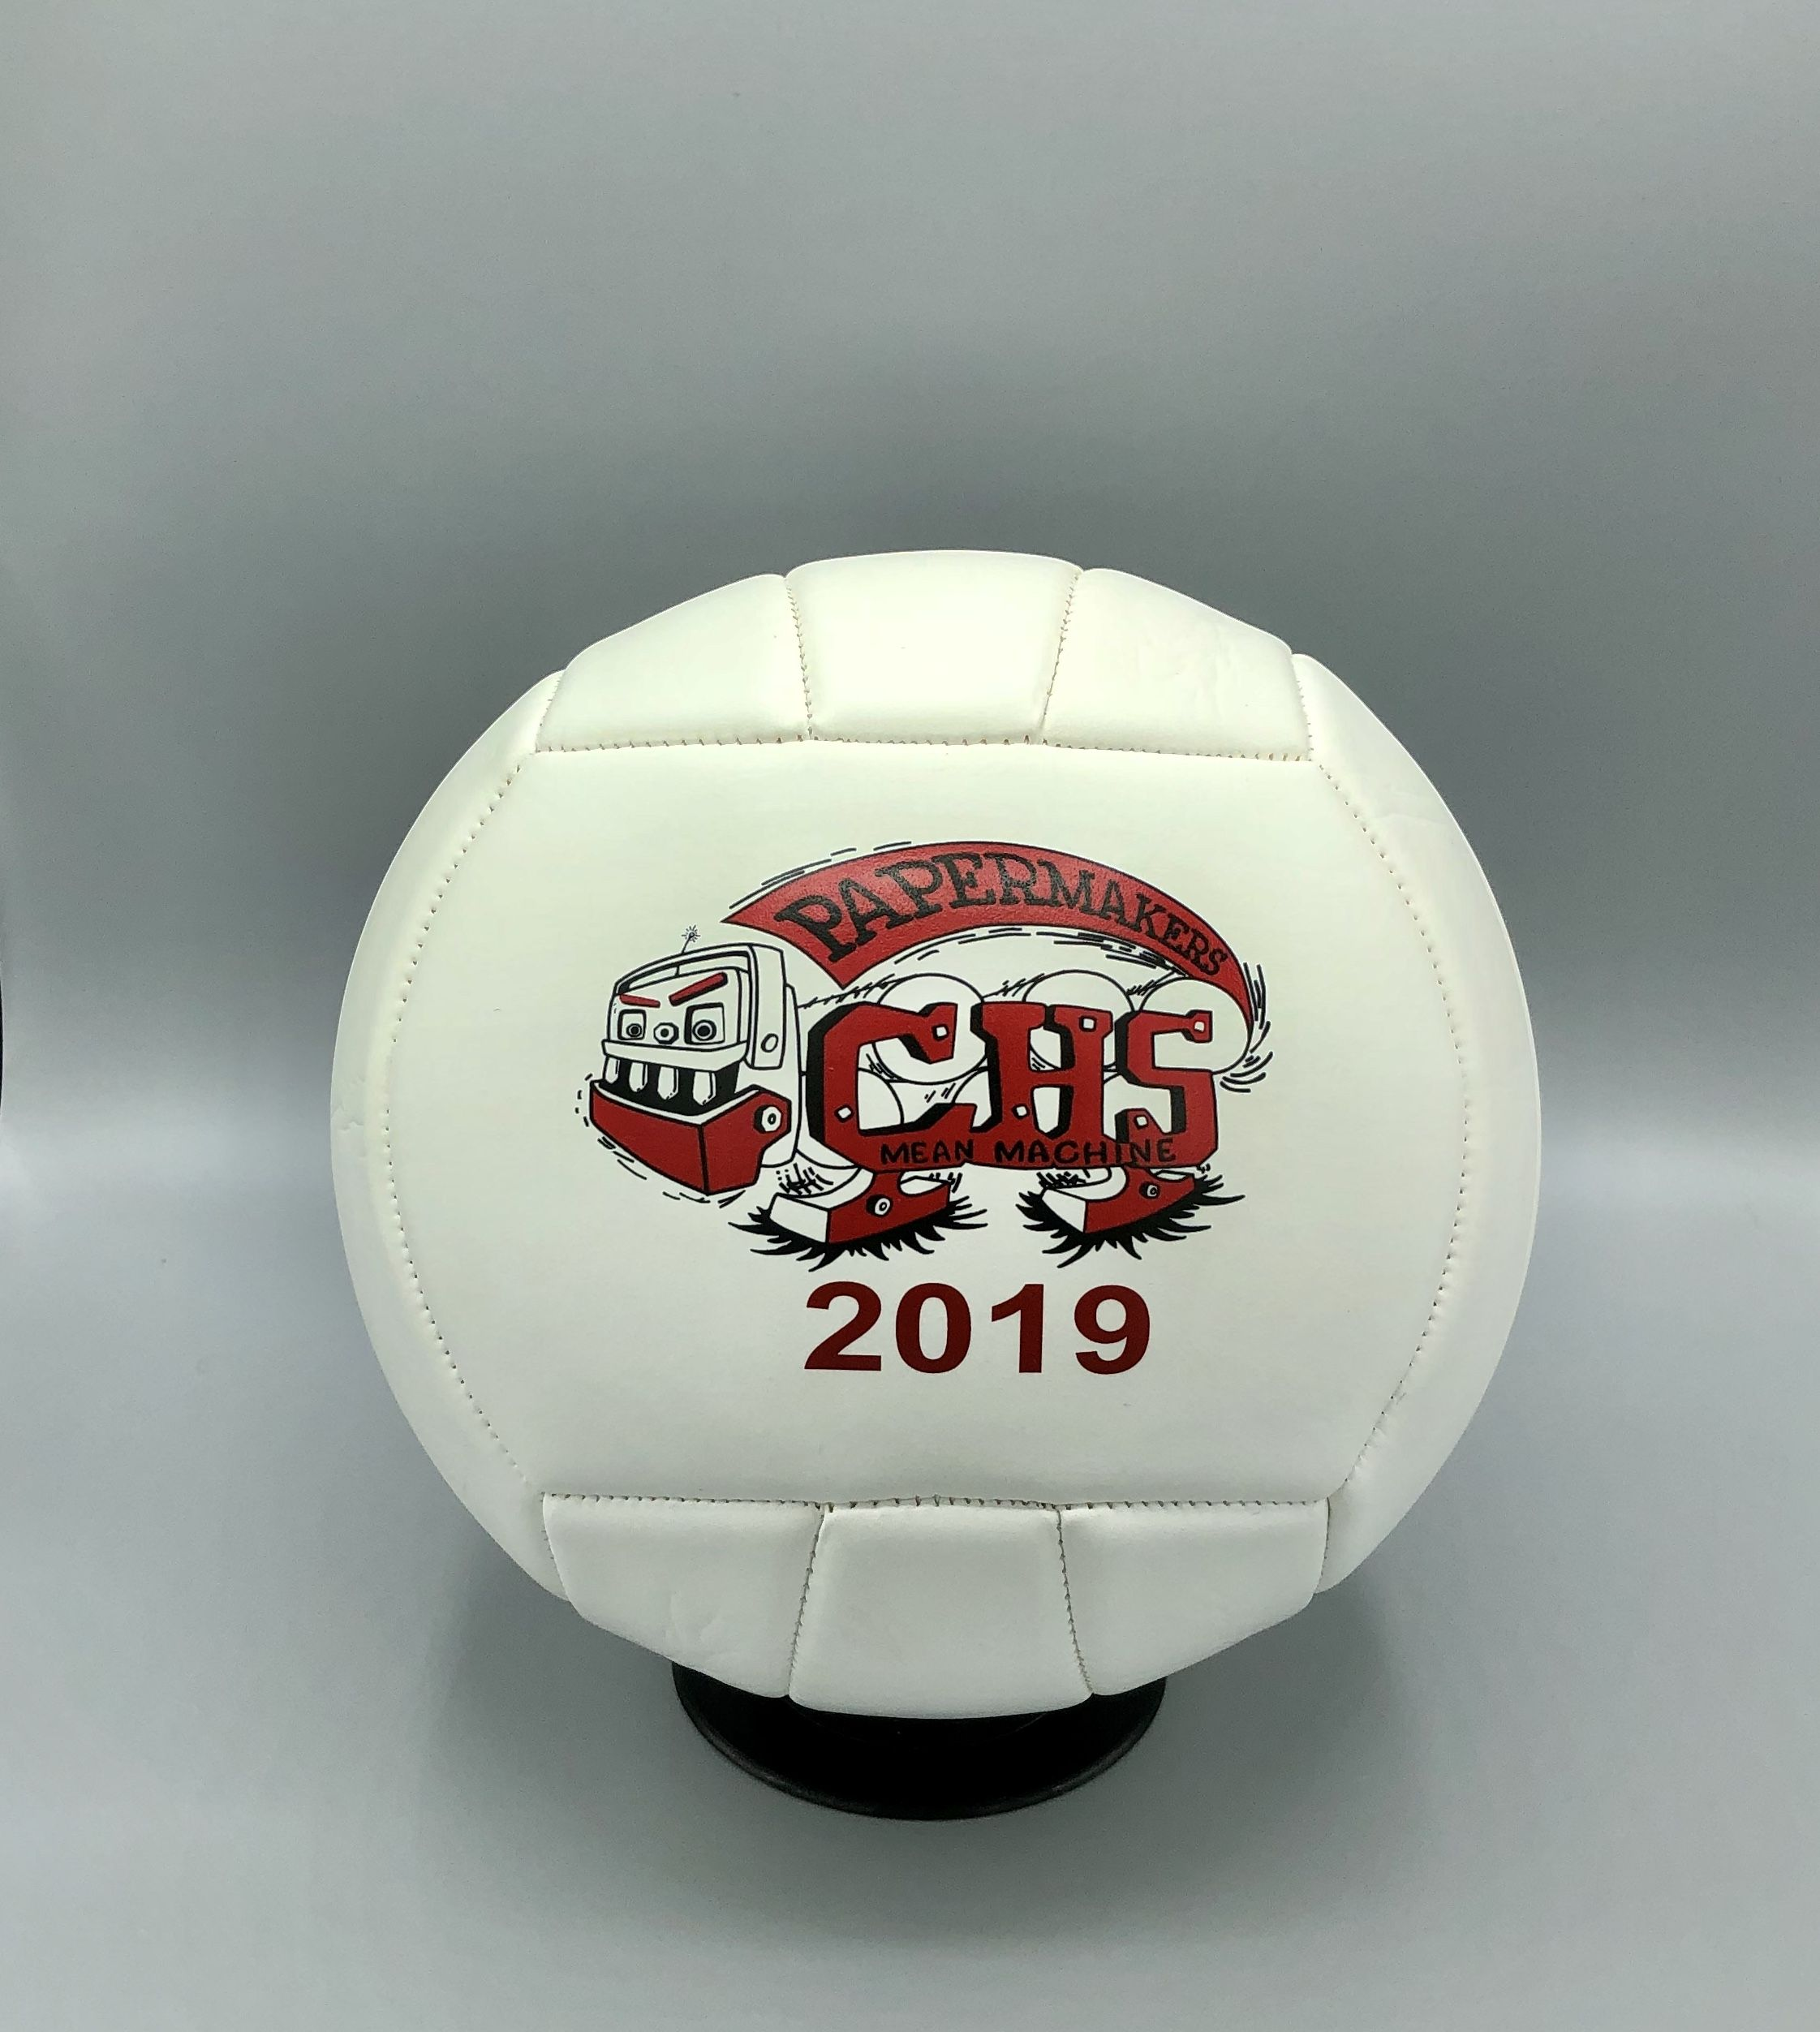 How Cute Is This Volleyball With The Team Logo And Year On One Side And The Team Photo On The Other Vol Volleyball Gifts Volleyball Coach Gifts Sports Gifts